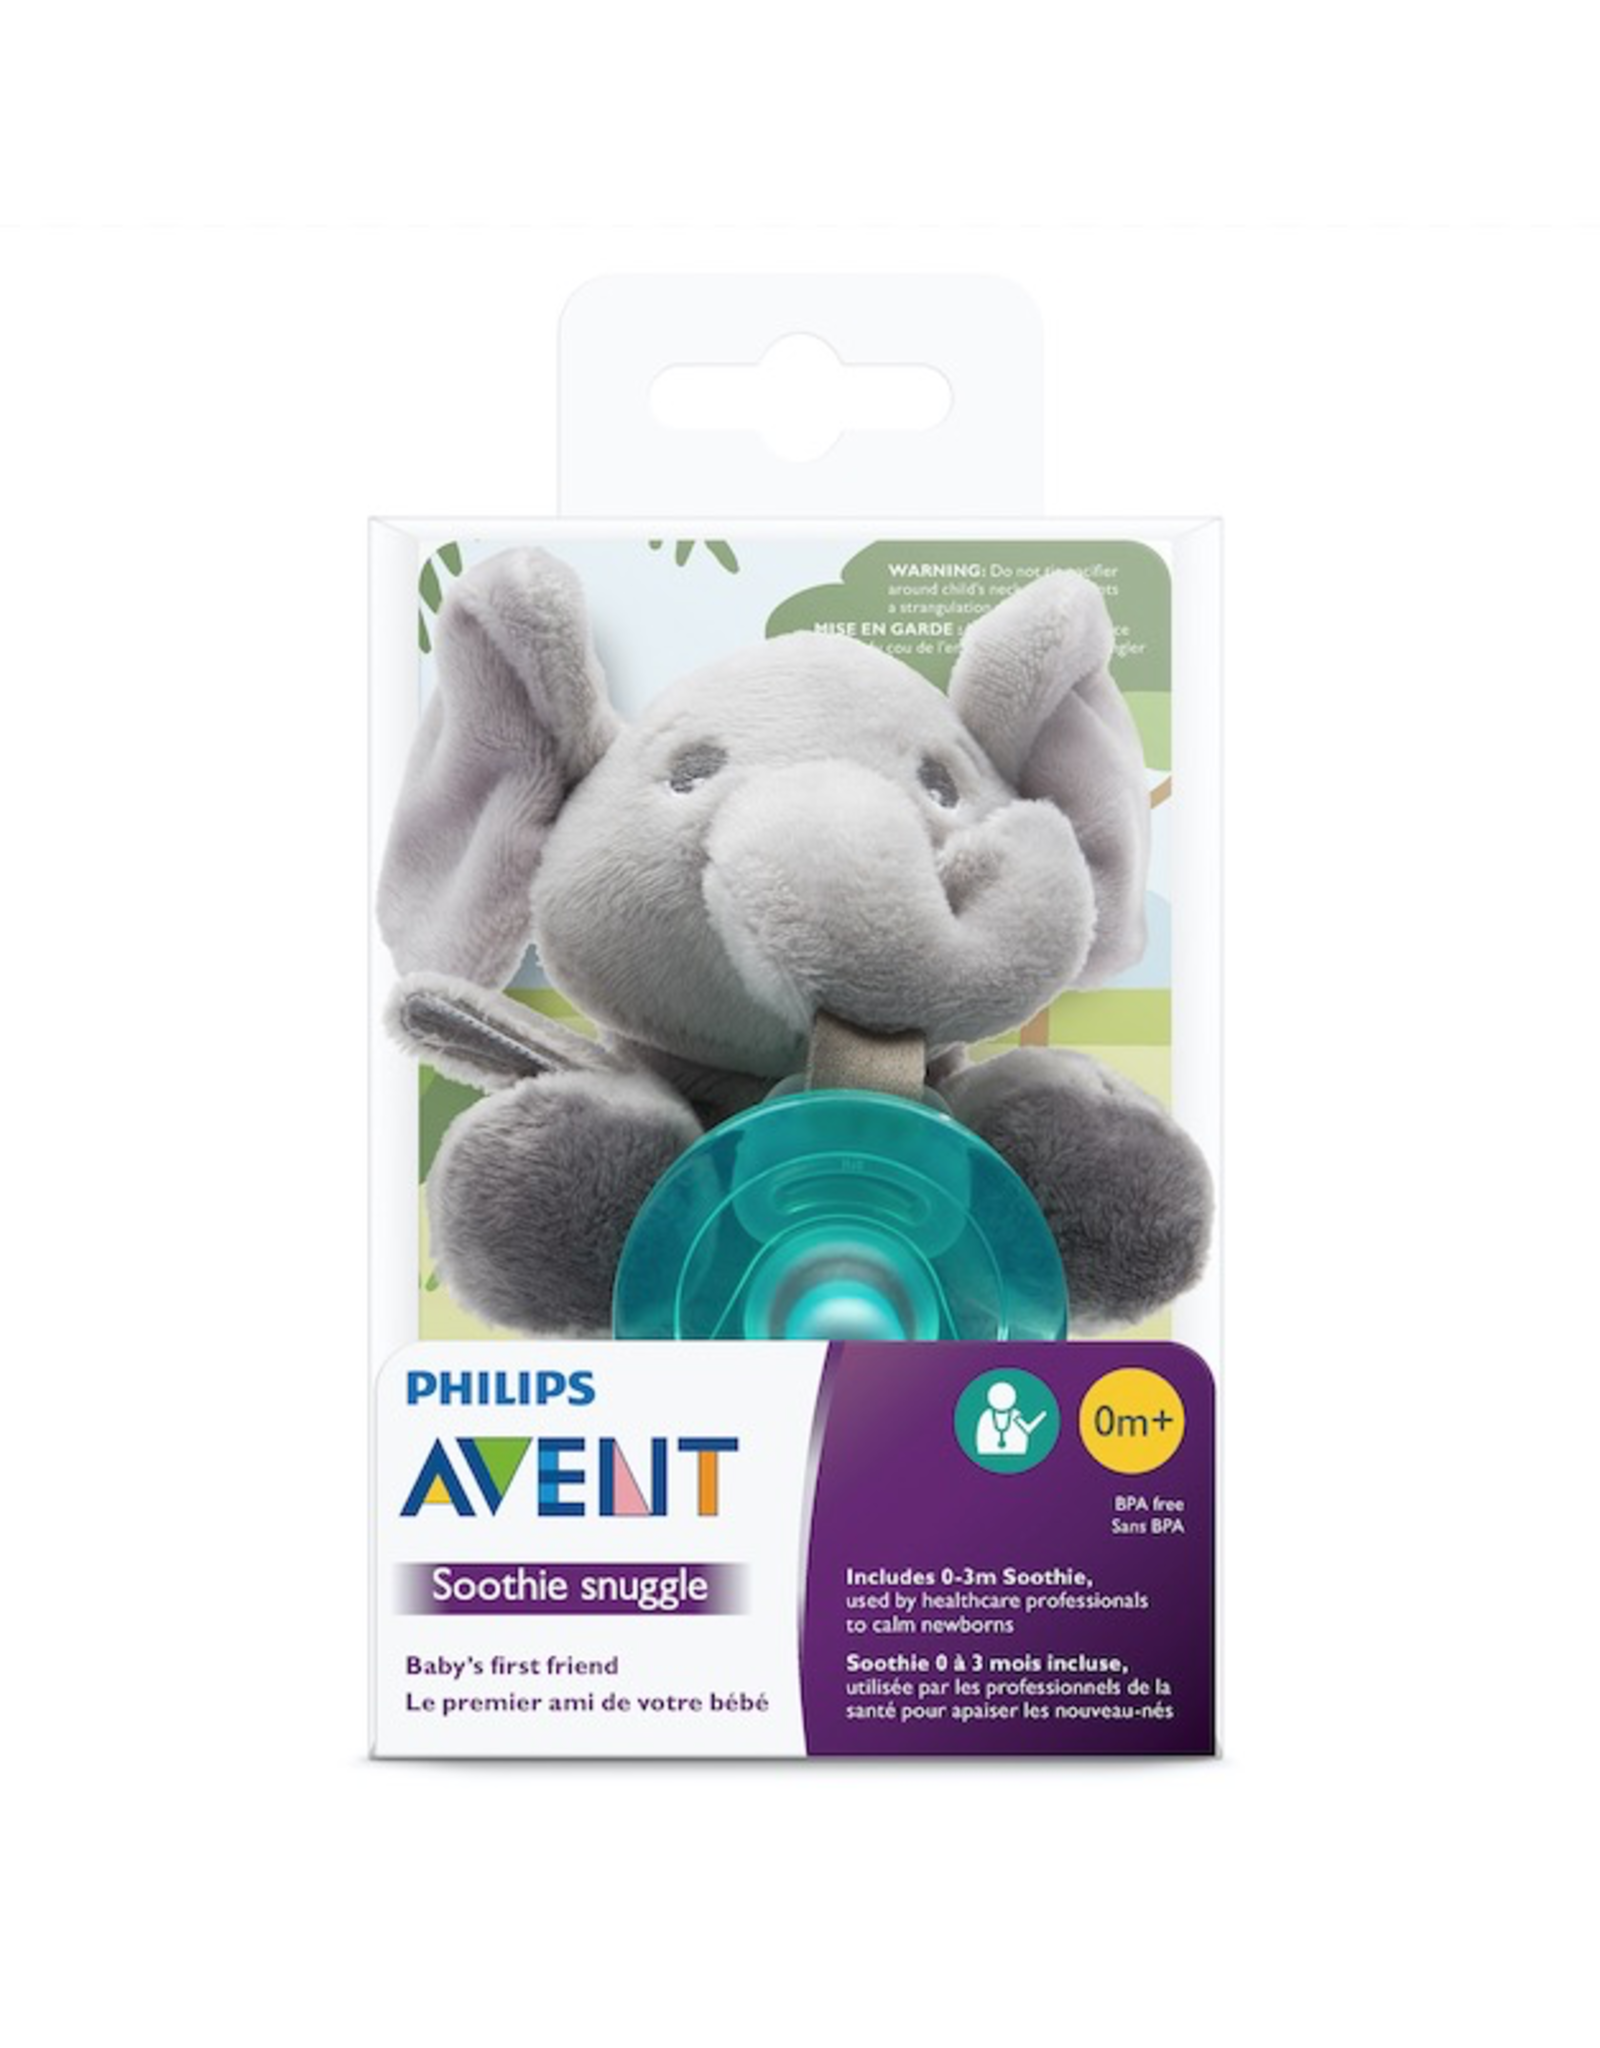 Philips Avent, Soothie Snuggle